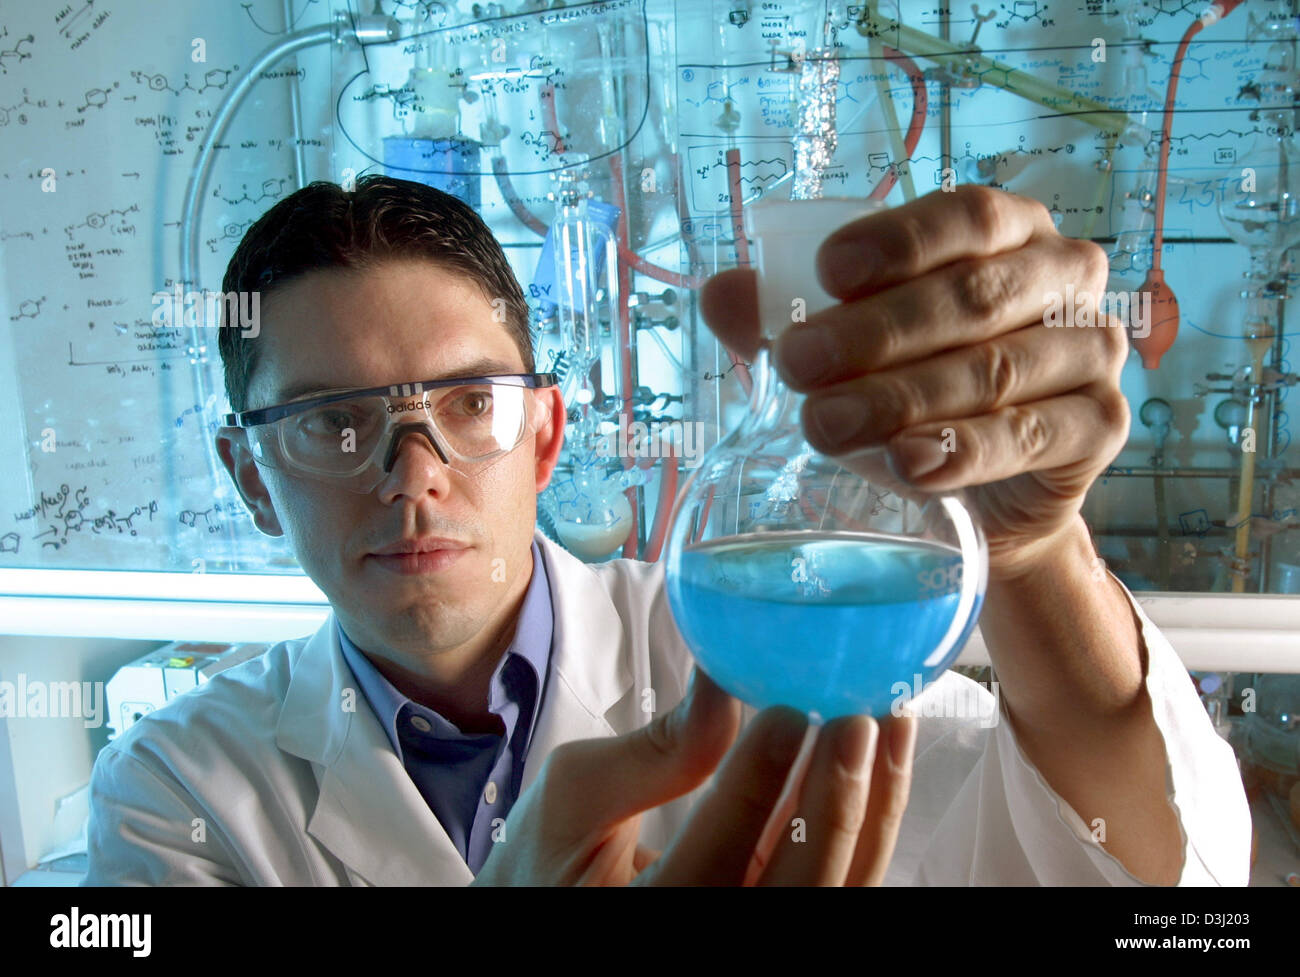 dpa file The picture shows chemist Michael Scheck at work in a – Lab Chemist